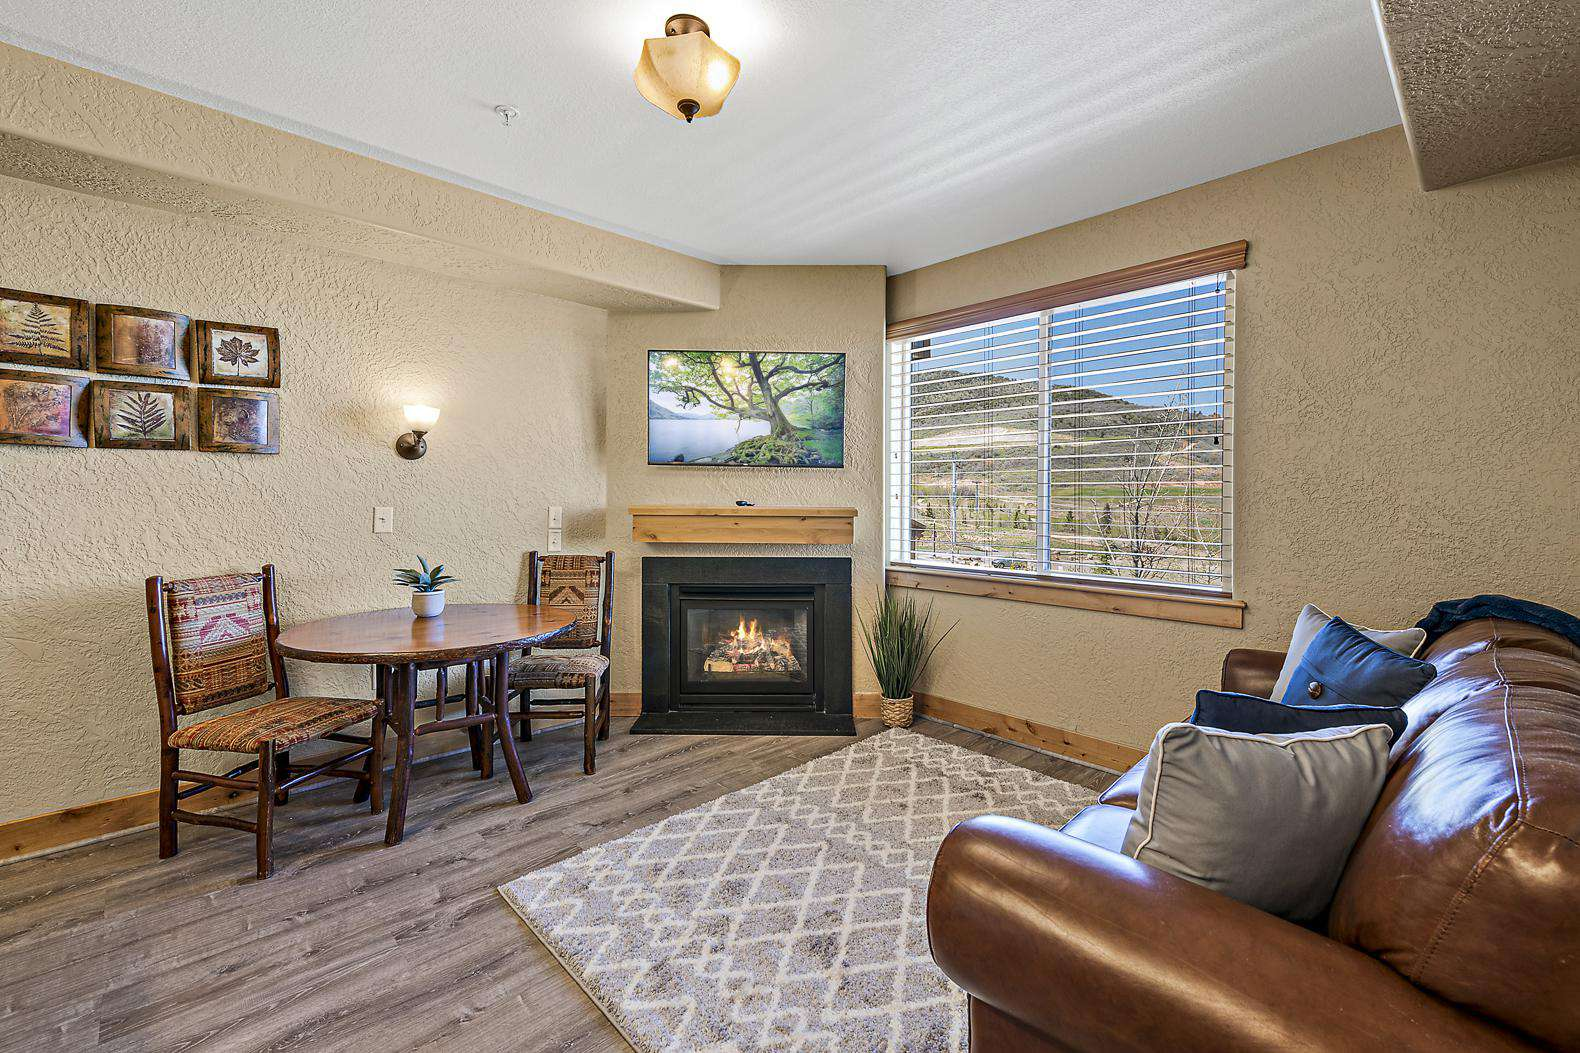 Inviting living room with dining table, fireplace, and smart TV